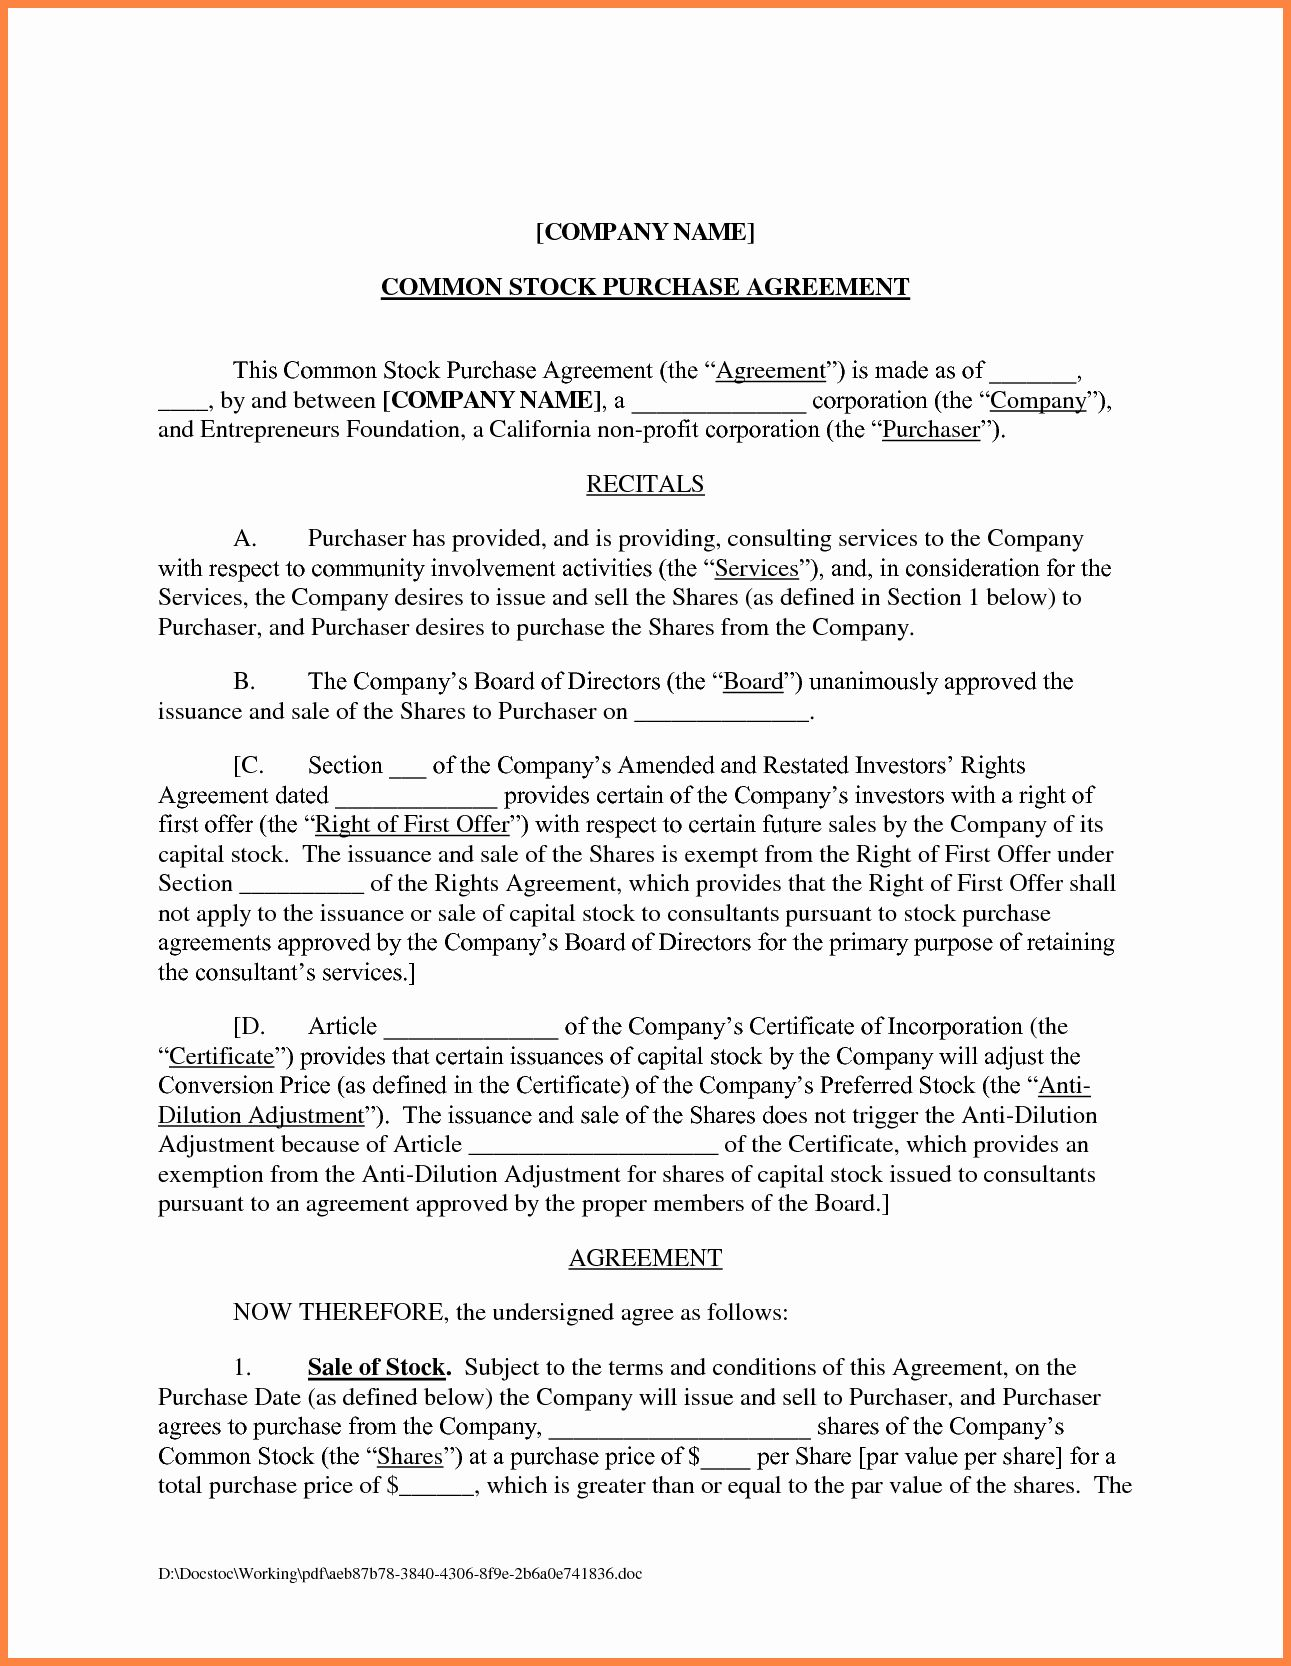 Company Equipment Use And Return Policy Agreement Fresh 3 Business Agreement Template Between Contract Template Business Agreement Template Business Agreement